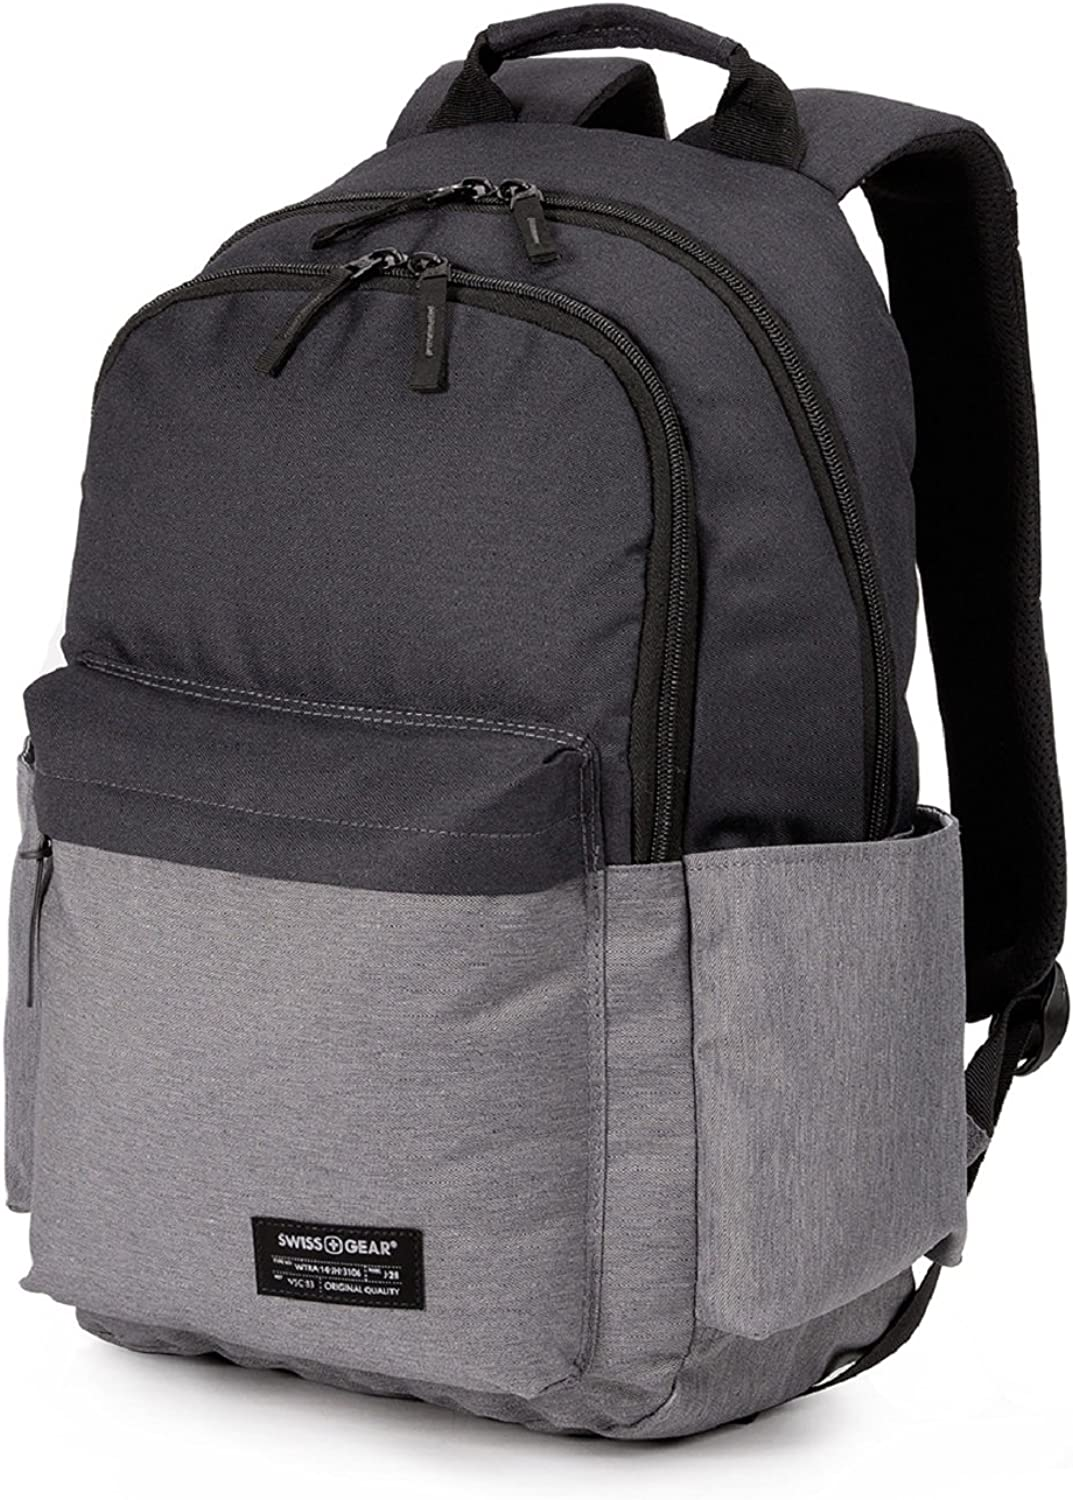 SWISSGEAR 2789 LAPTOP SCHOOL COLLEGE BACKPACK-BLACK GRAY